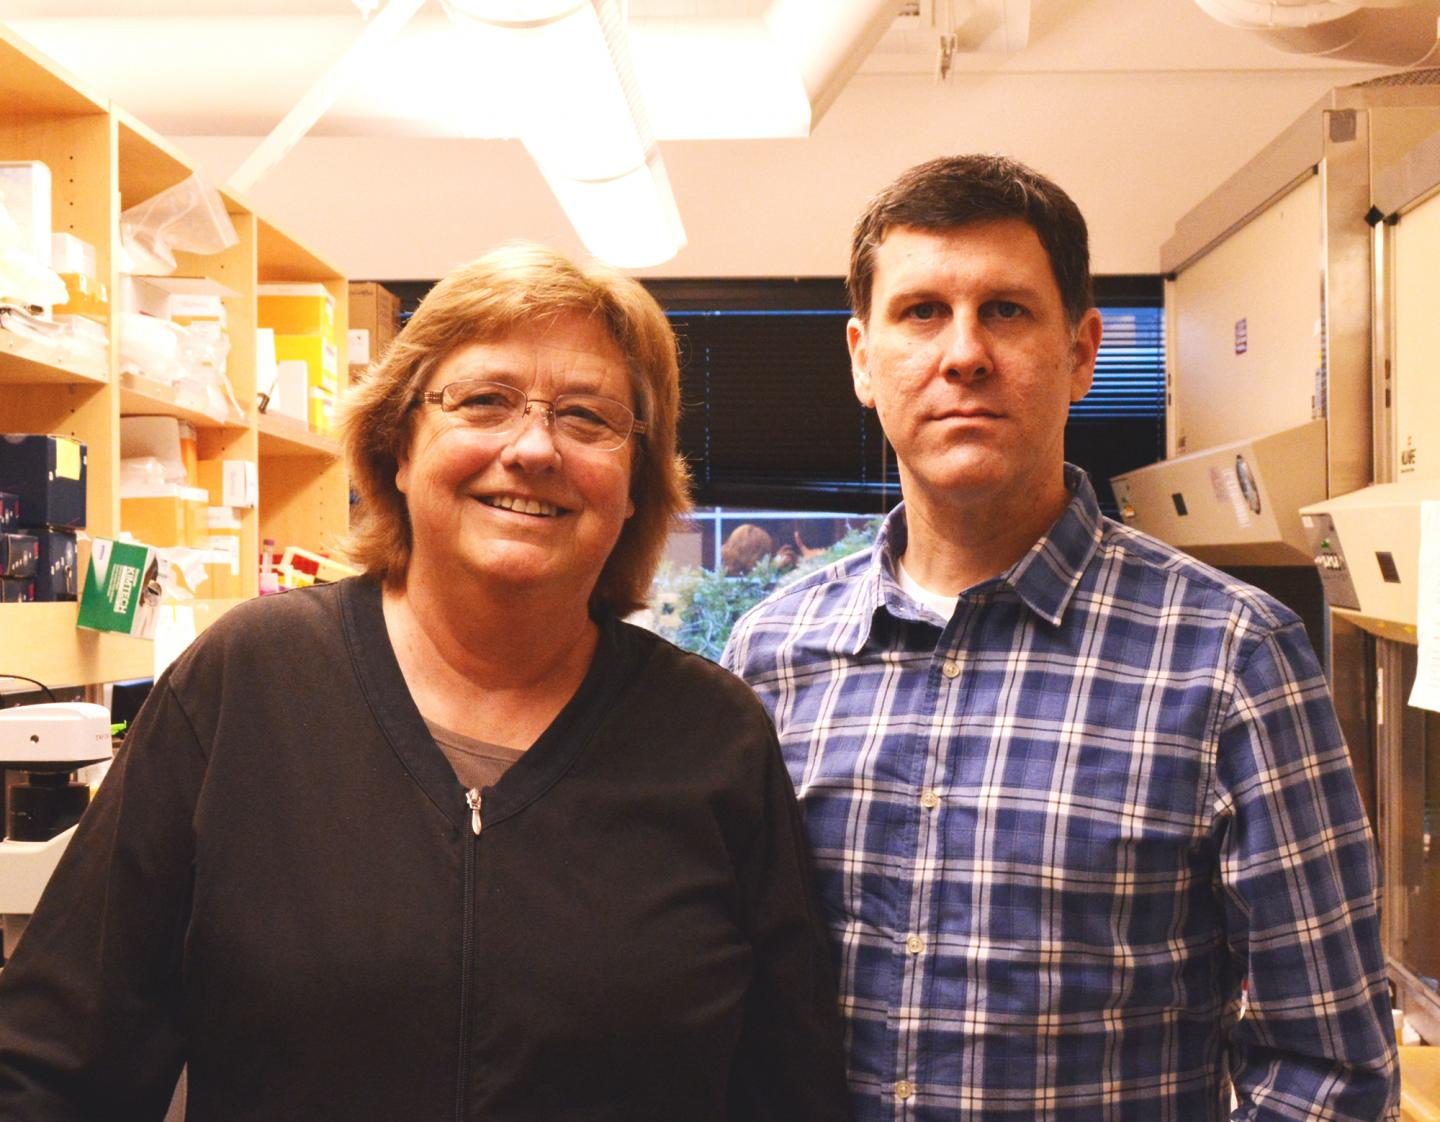 Jeanne Loring and Michael J. Boland, The Scripps Research Institute